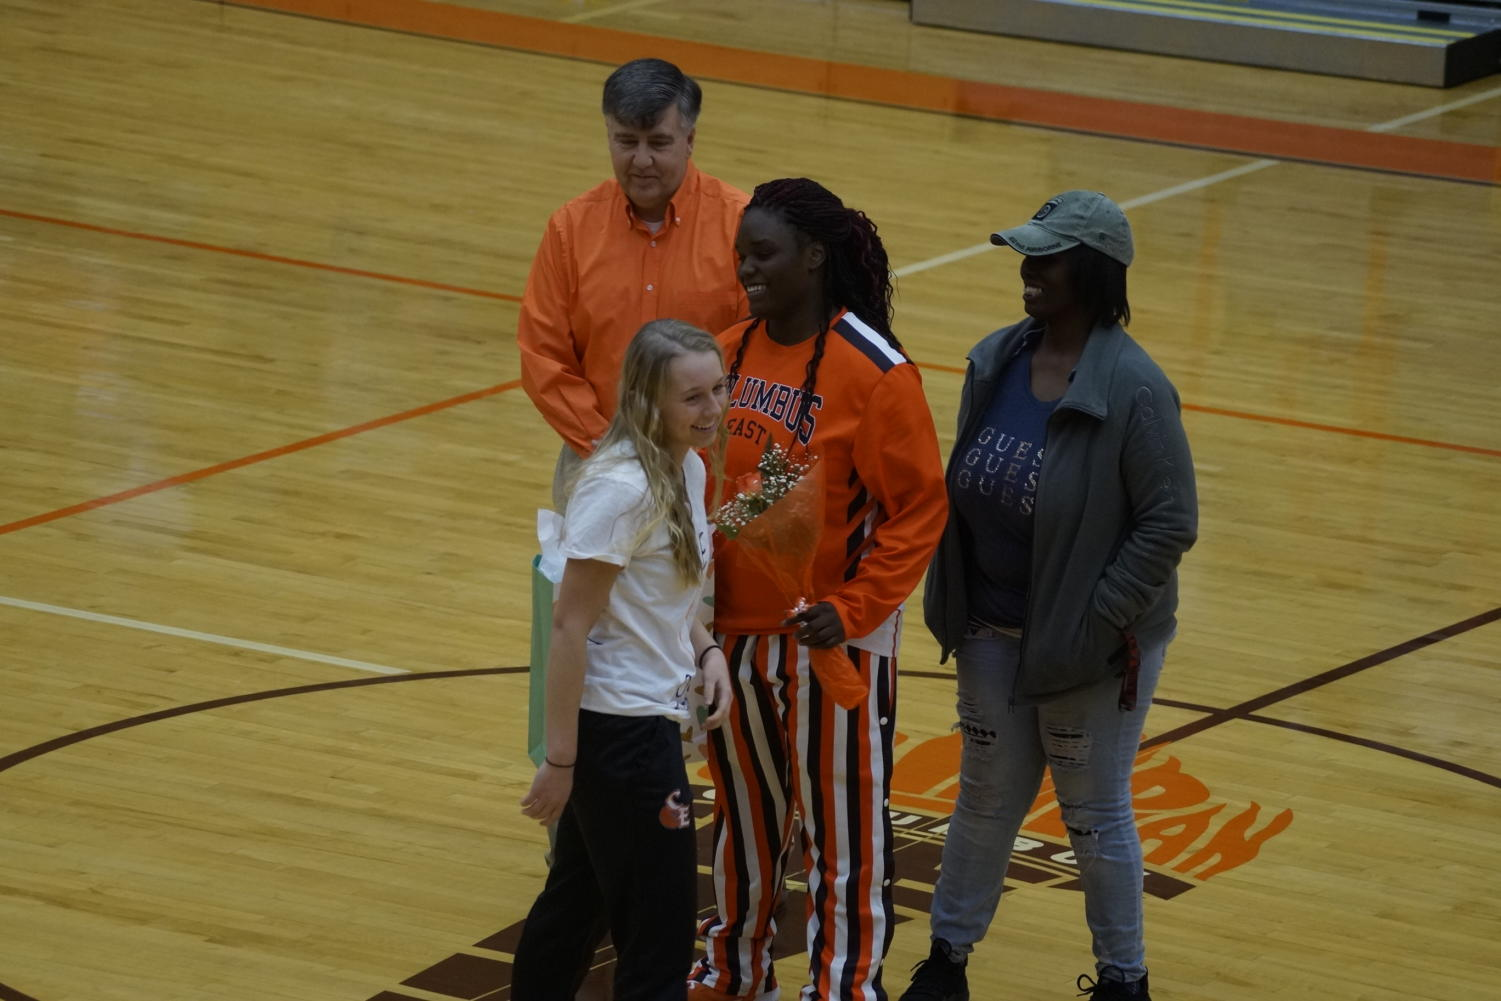 Senior Beyonce Coleman-Turner receives laughs with her teammate junior Whitley Rankin.